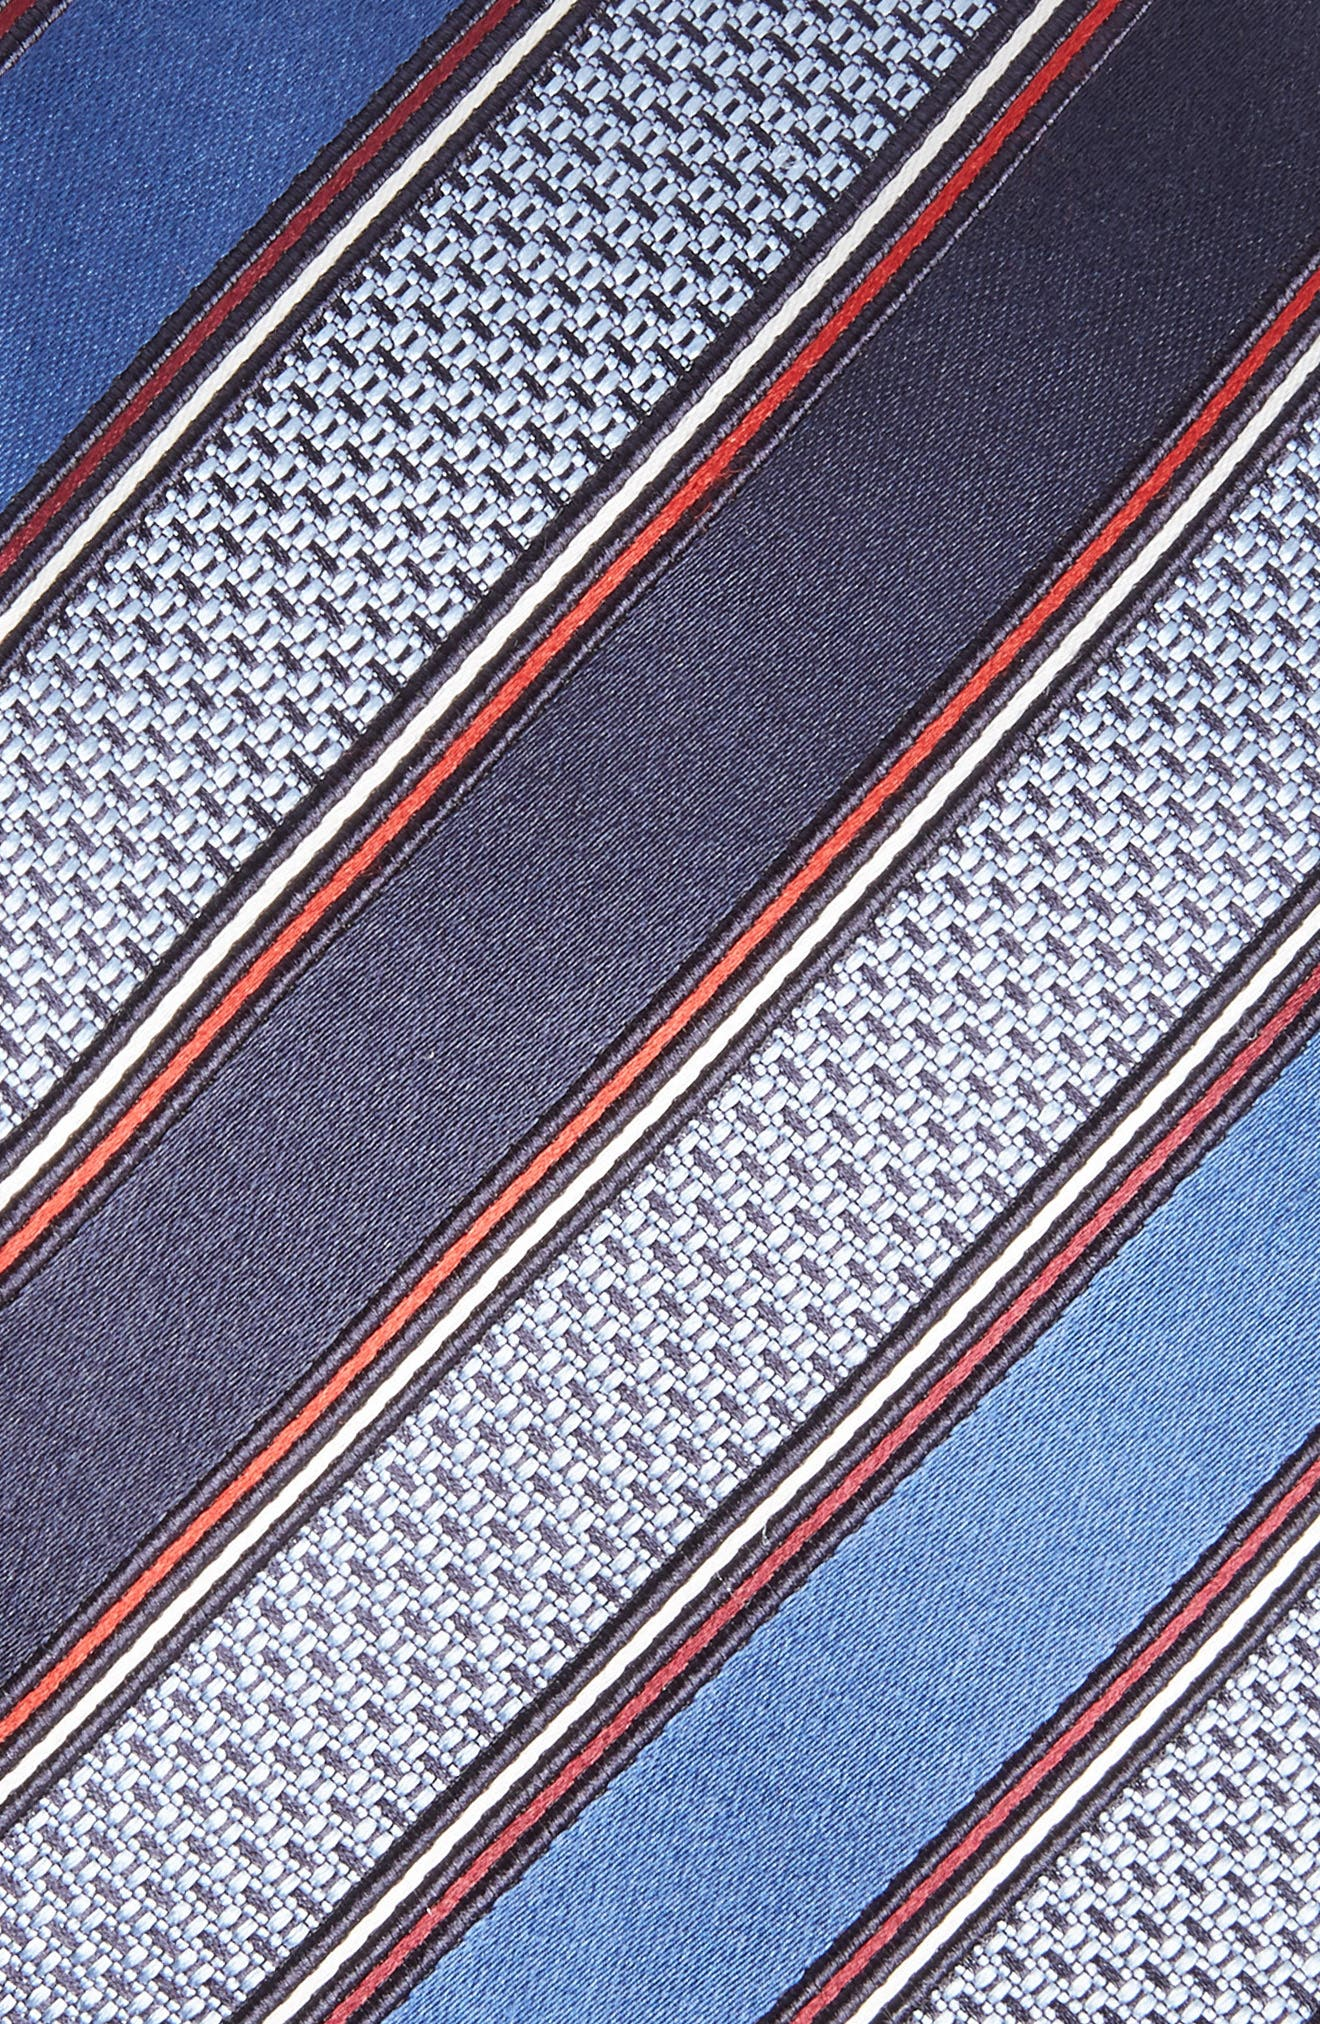 Stripe Silk & Cotton Tie,                             Alternate thumbnail 2, color,                             414